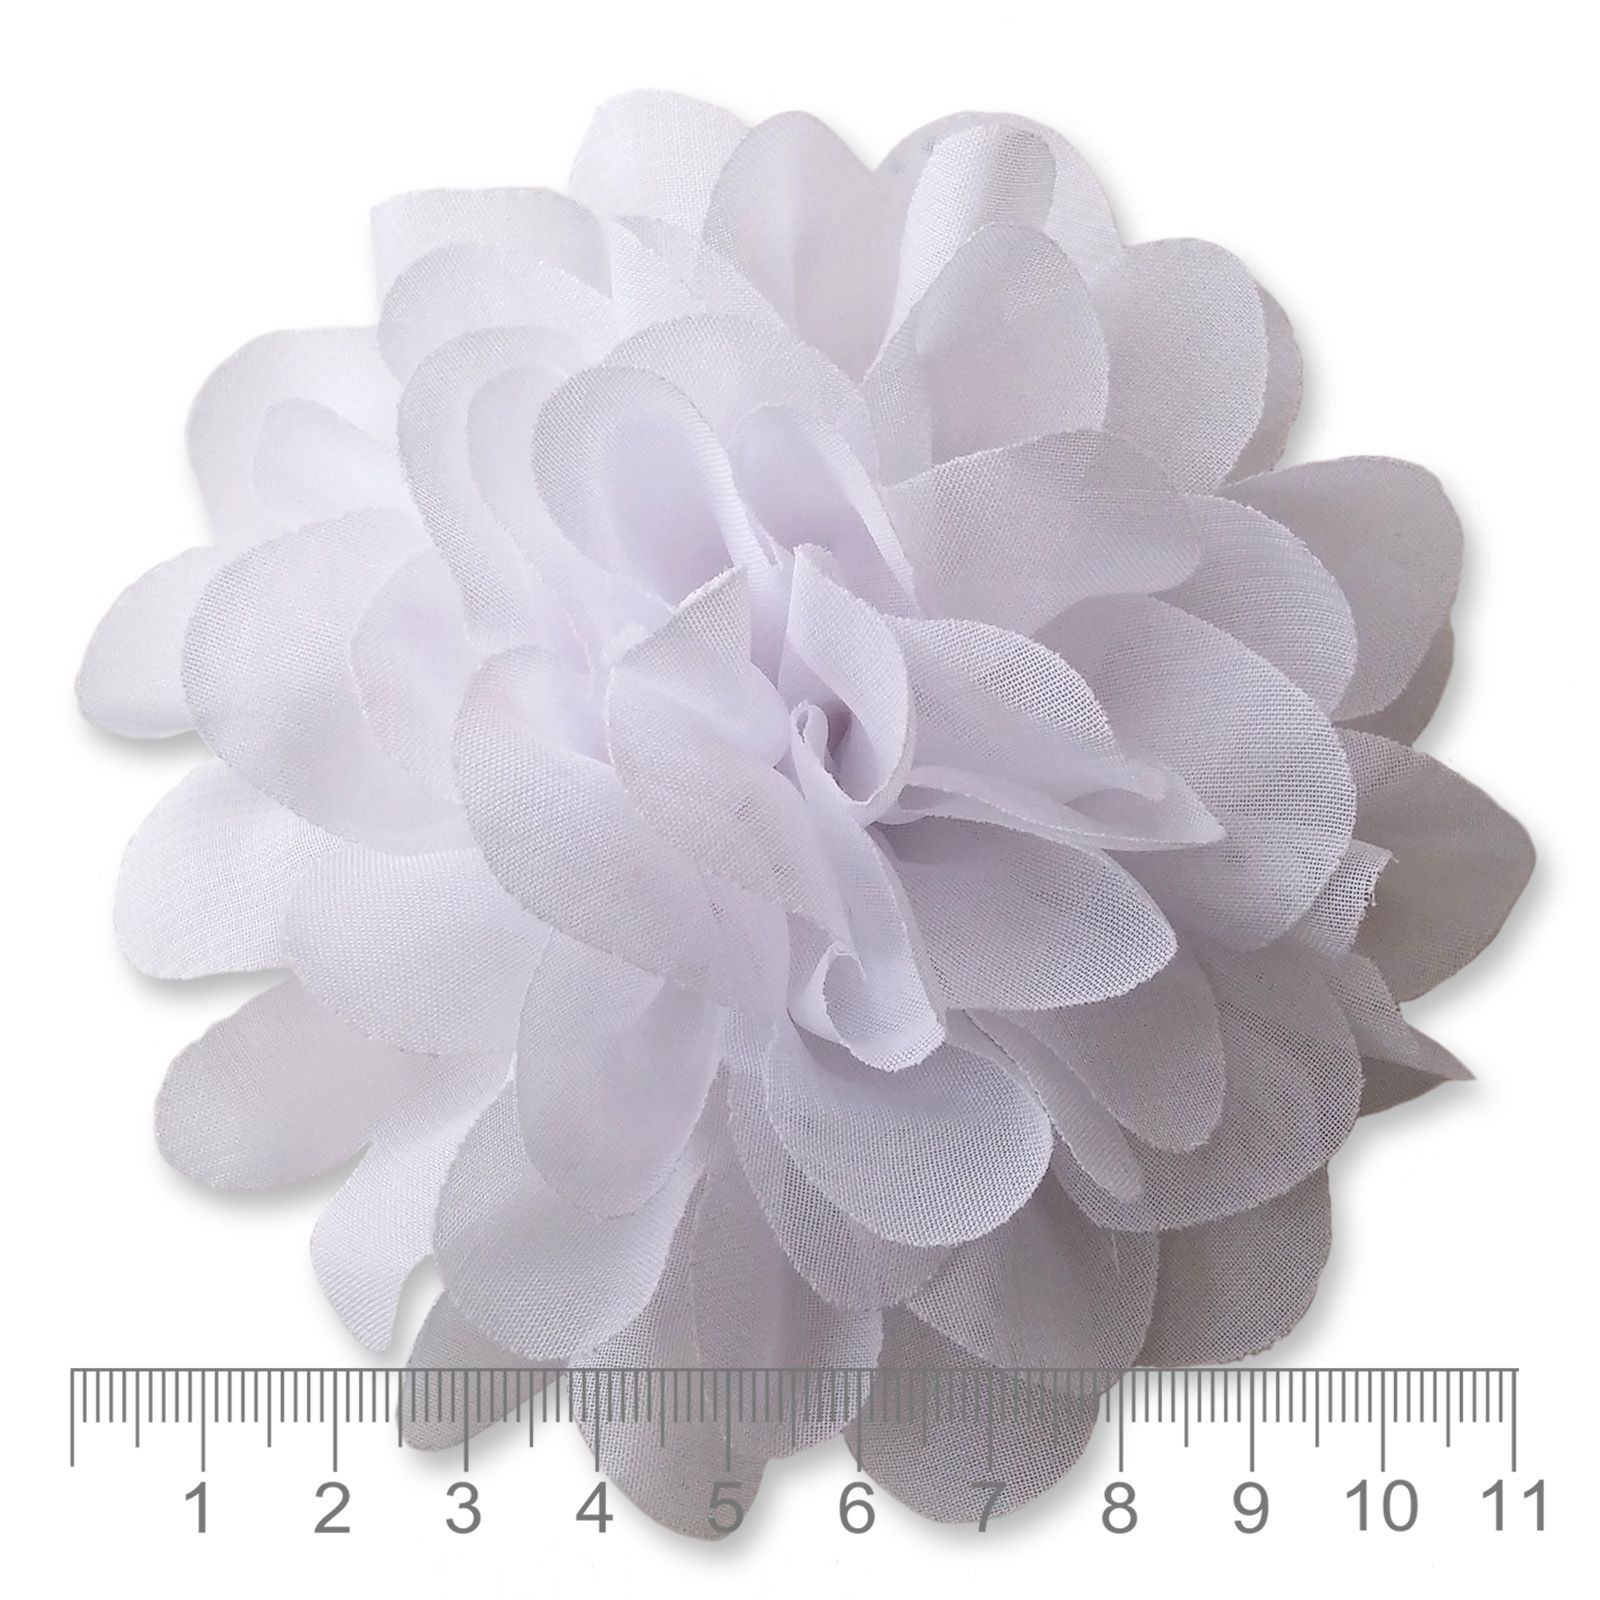 Cool white fabric flower pictures inspiration images for wedding awesome white fabric flower gallery images for wedding gown ideas mightylinksfo Images